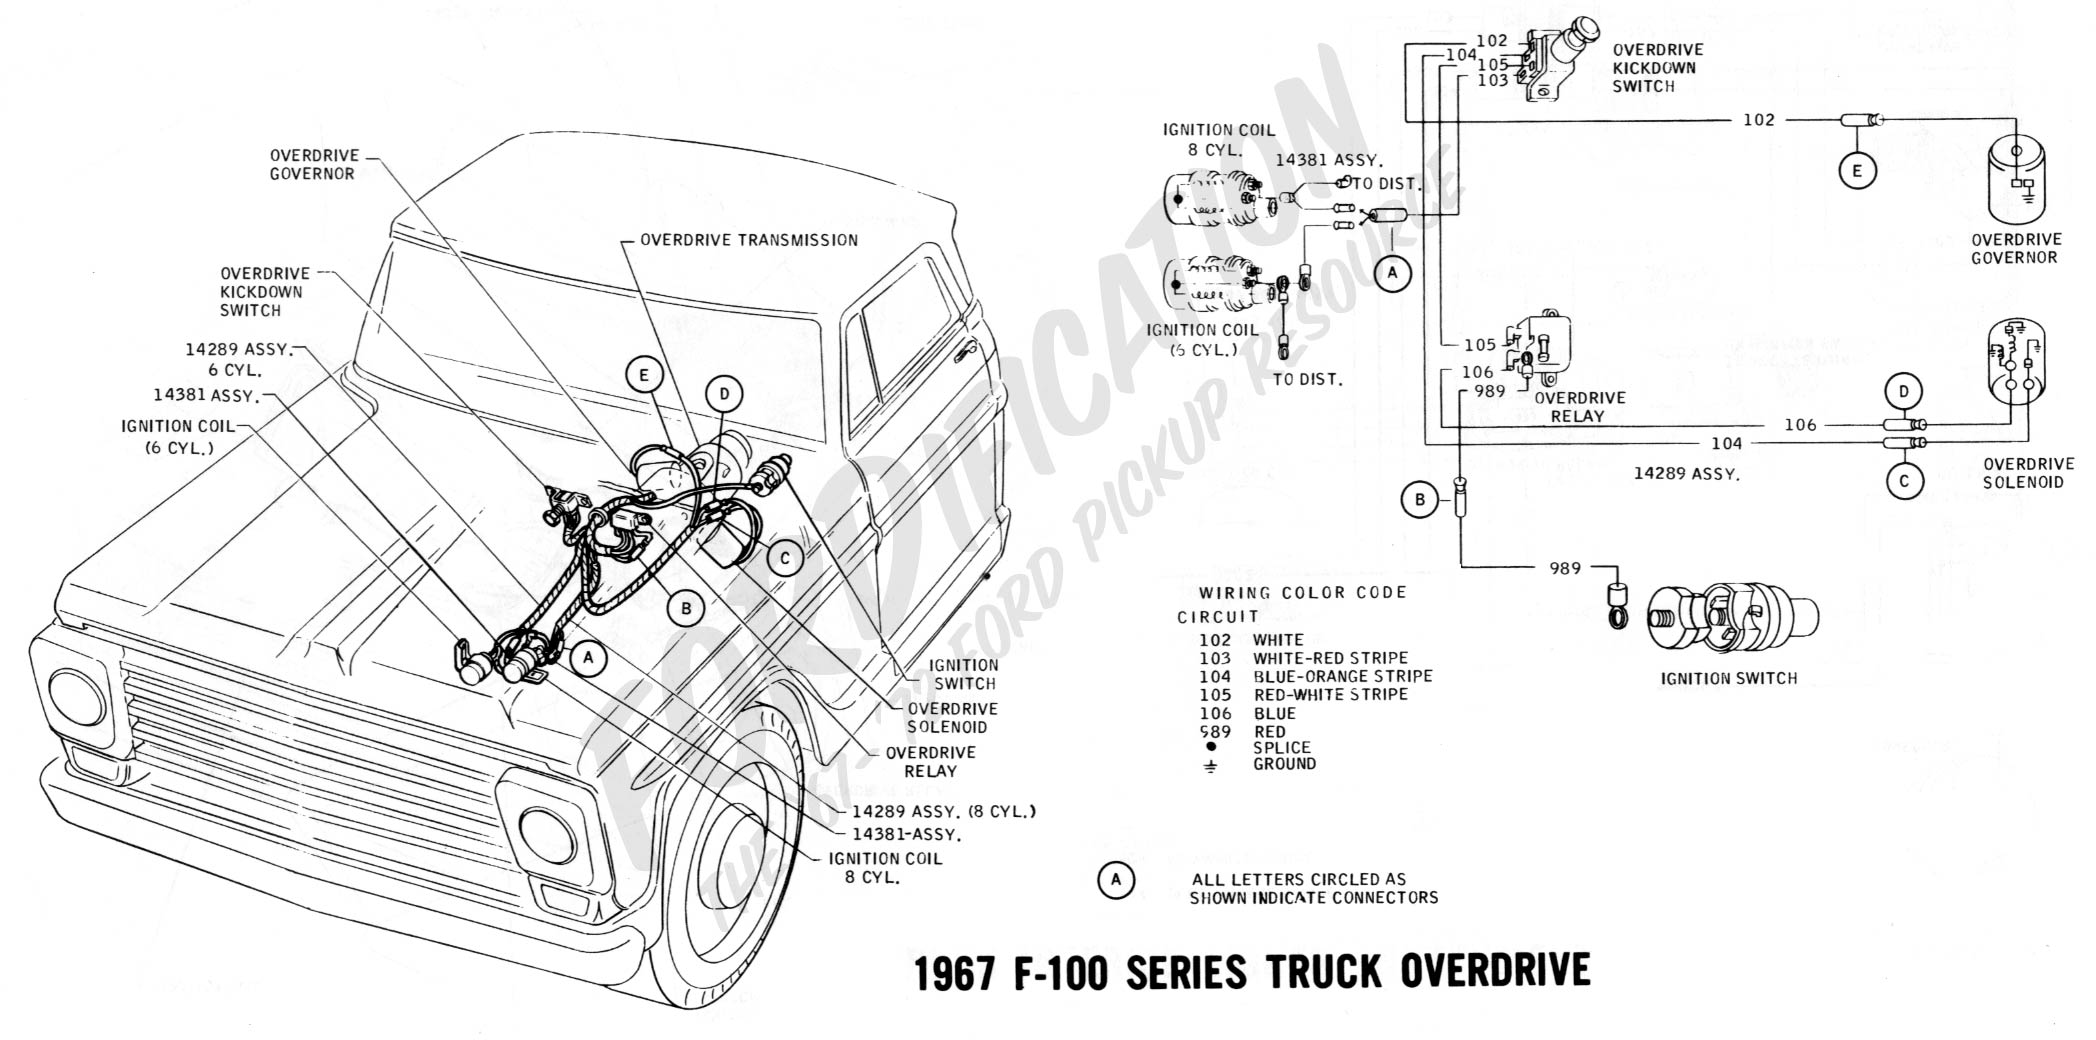 ford truck technical drawings and schematics section h wiring rh fordification com Ignition Coil Wiring Diagram 1968 Briggs and Stratton Ignition Coil Wiring Diagram